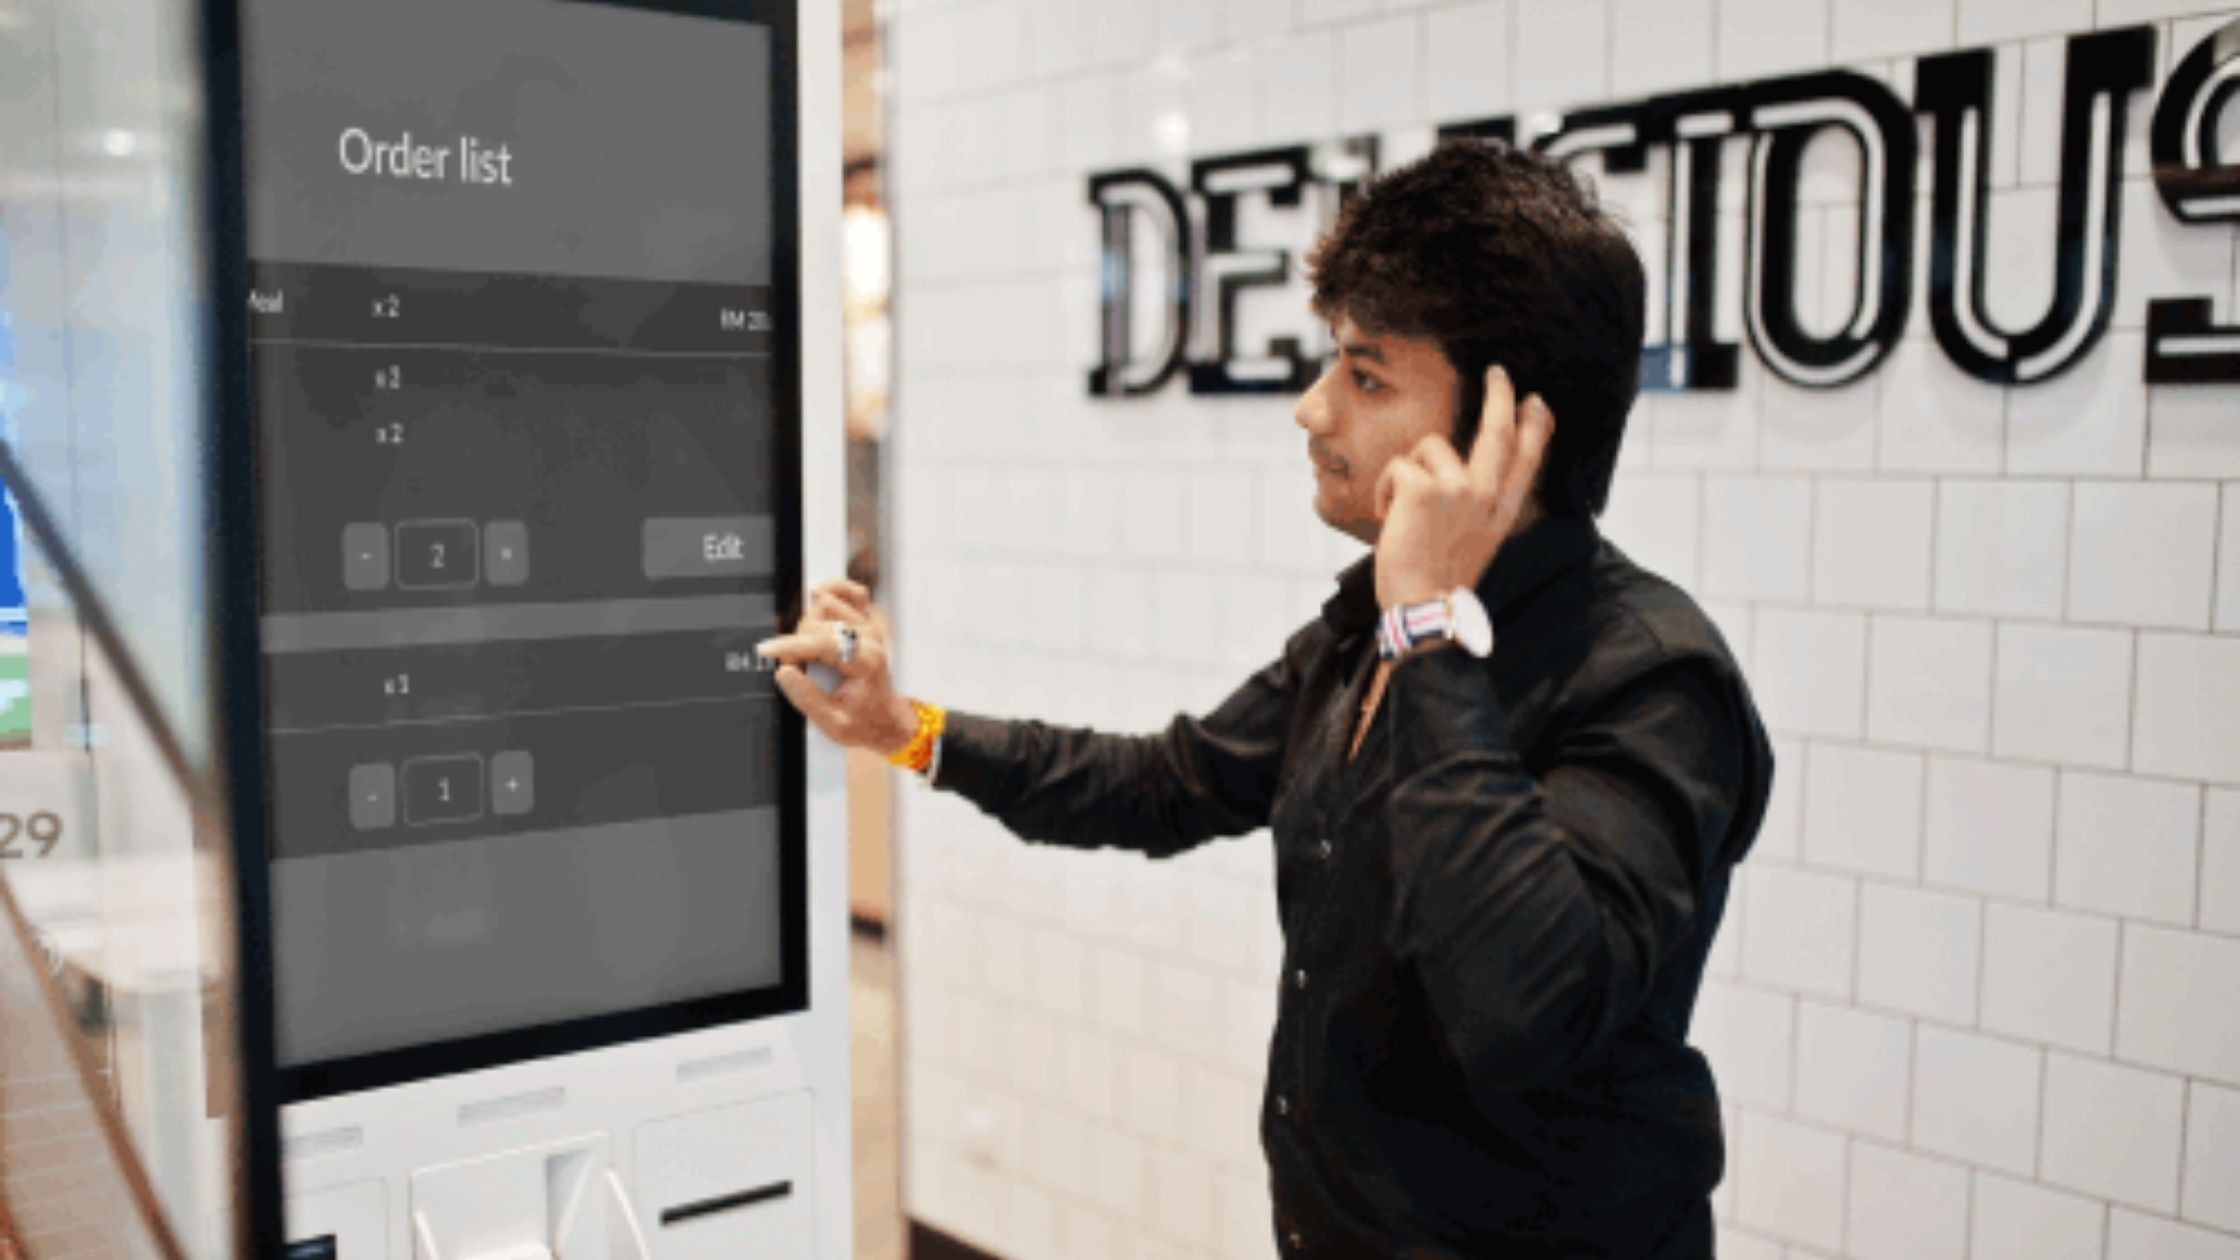 Image shows man using a self service kiosk screen to adjust an order. The screen has an enhanced display with large text and options